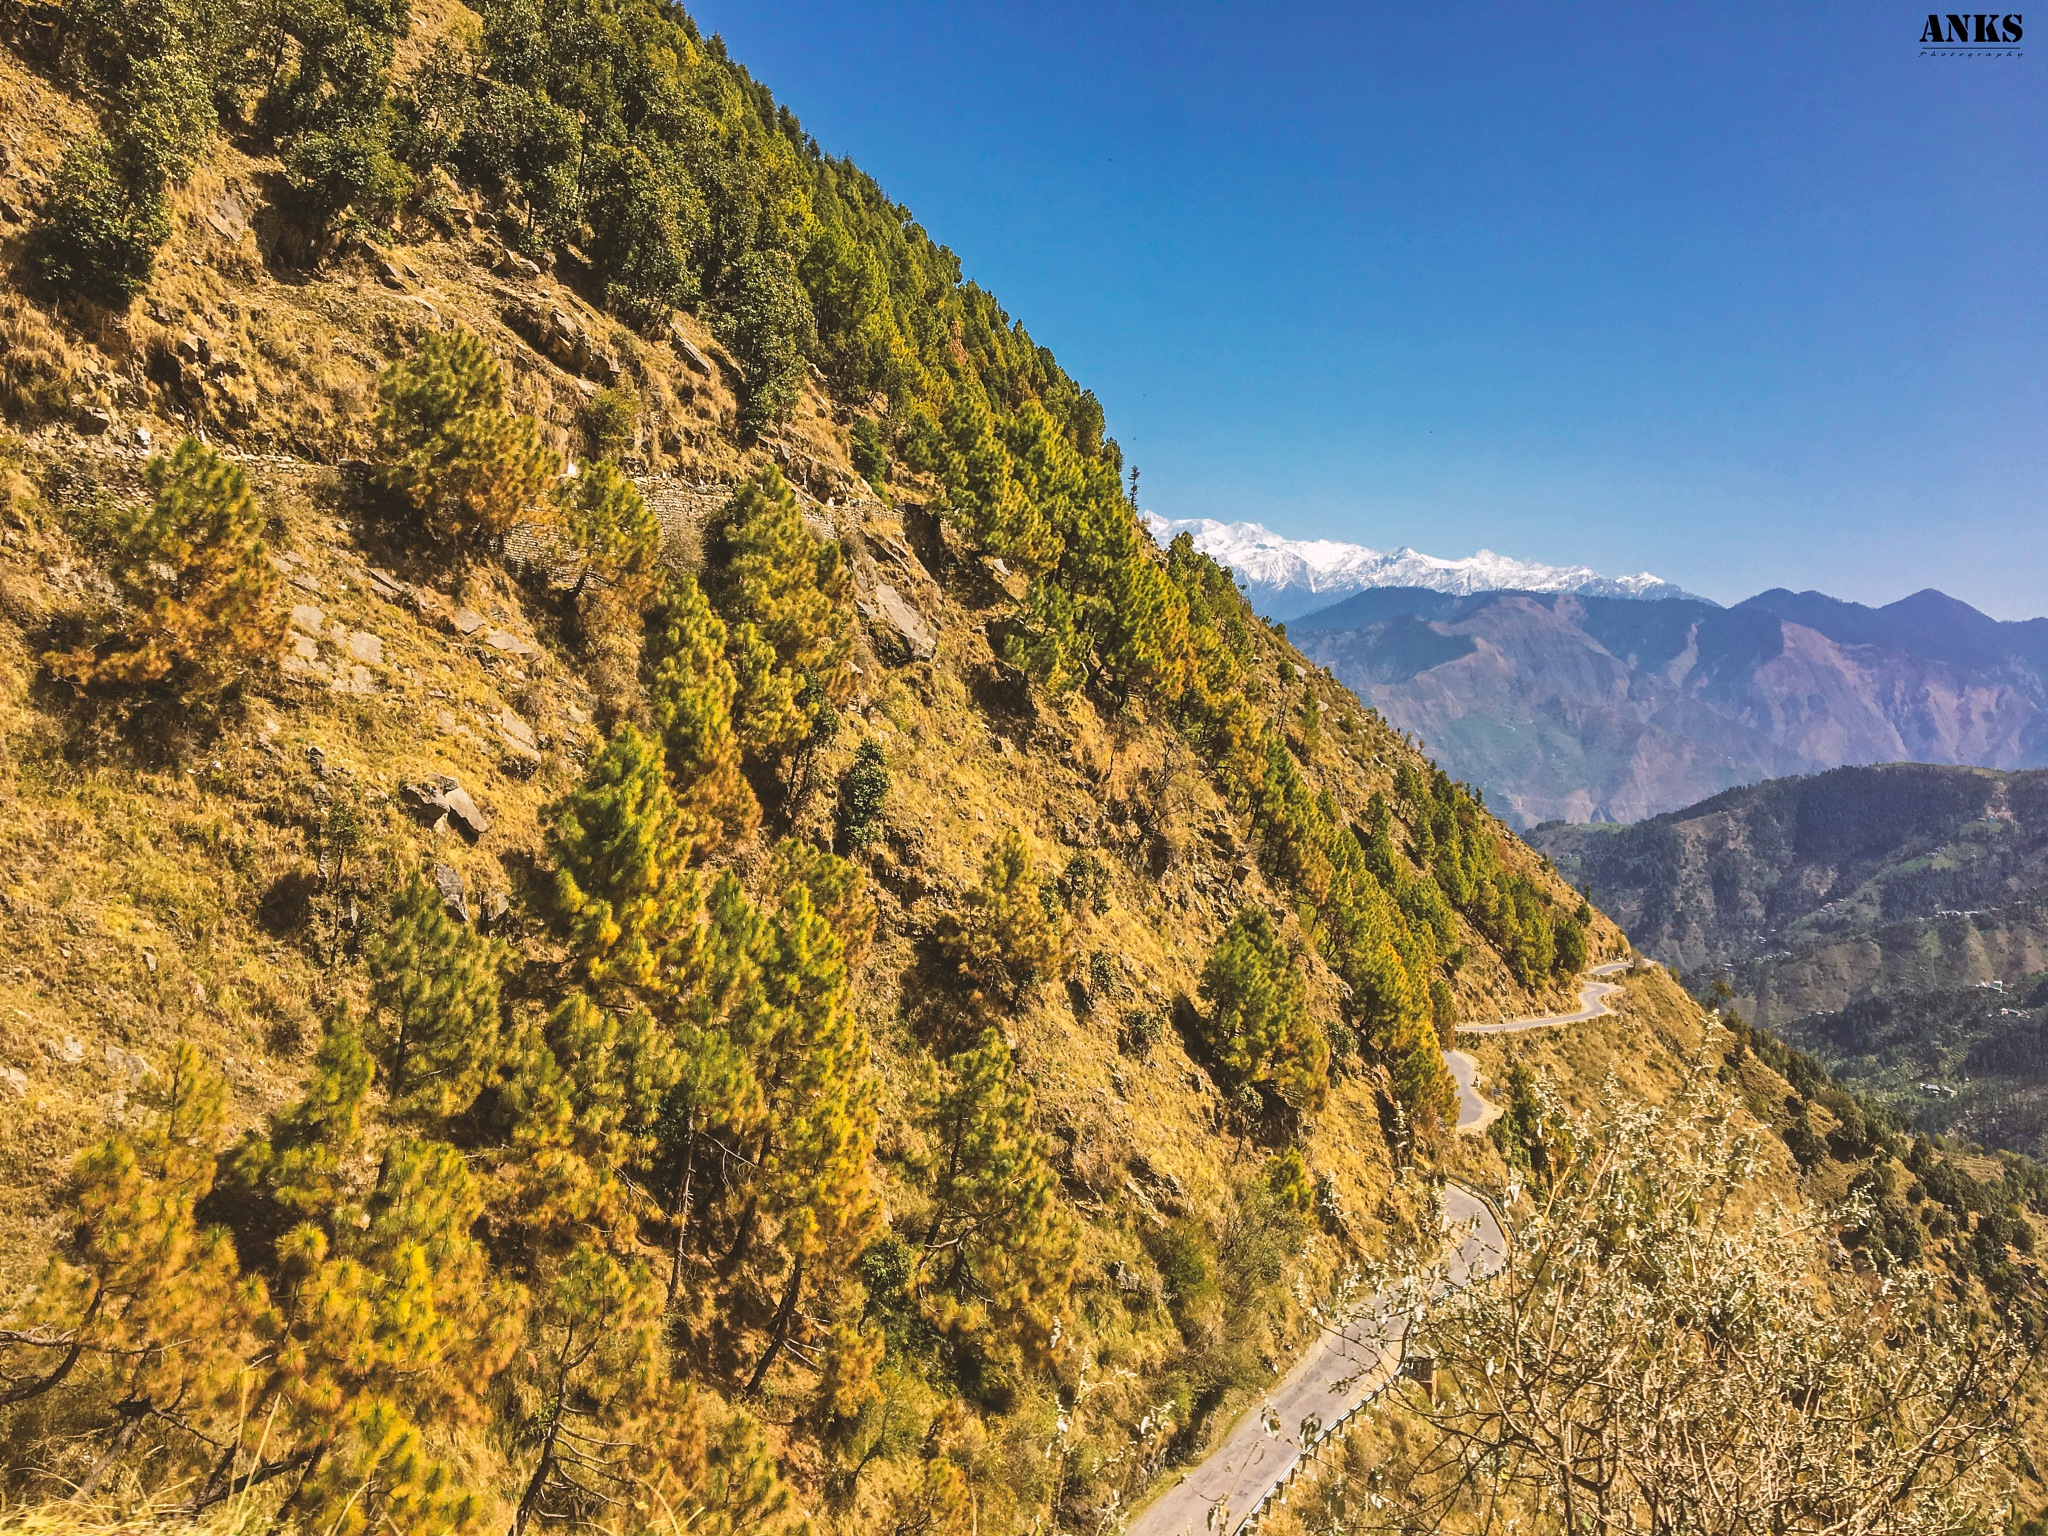 Photo in Travel #mountains #mountain #himachal #hp #himachal pradesh #india #indian mountains #nature #natural #nature lovers #way #itsmeankushkumar #photographer #photography #anksphotography #photobyanks #dare_to_click #white #green #blue #road #chamba #traveller #explore #travel #mobile click #iphone #apple #iphone6s